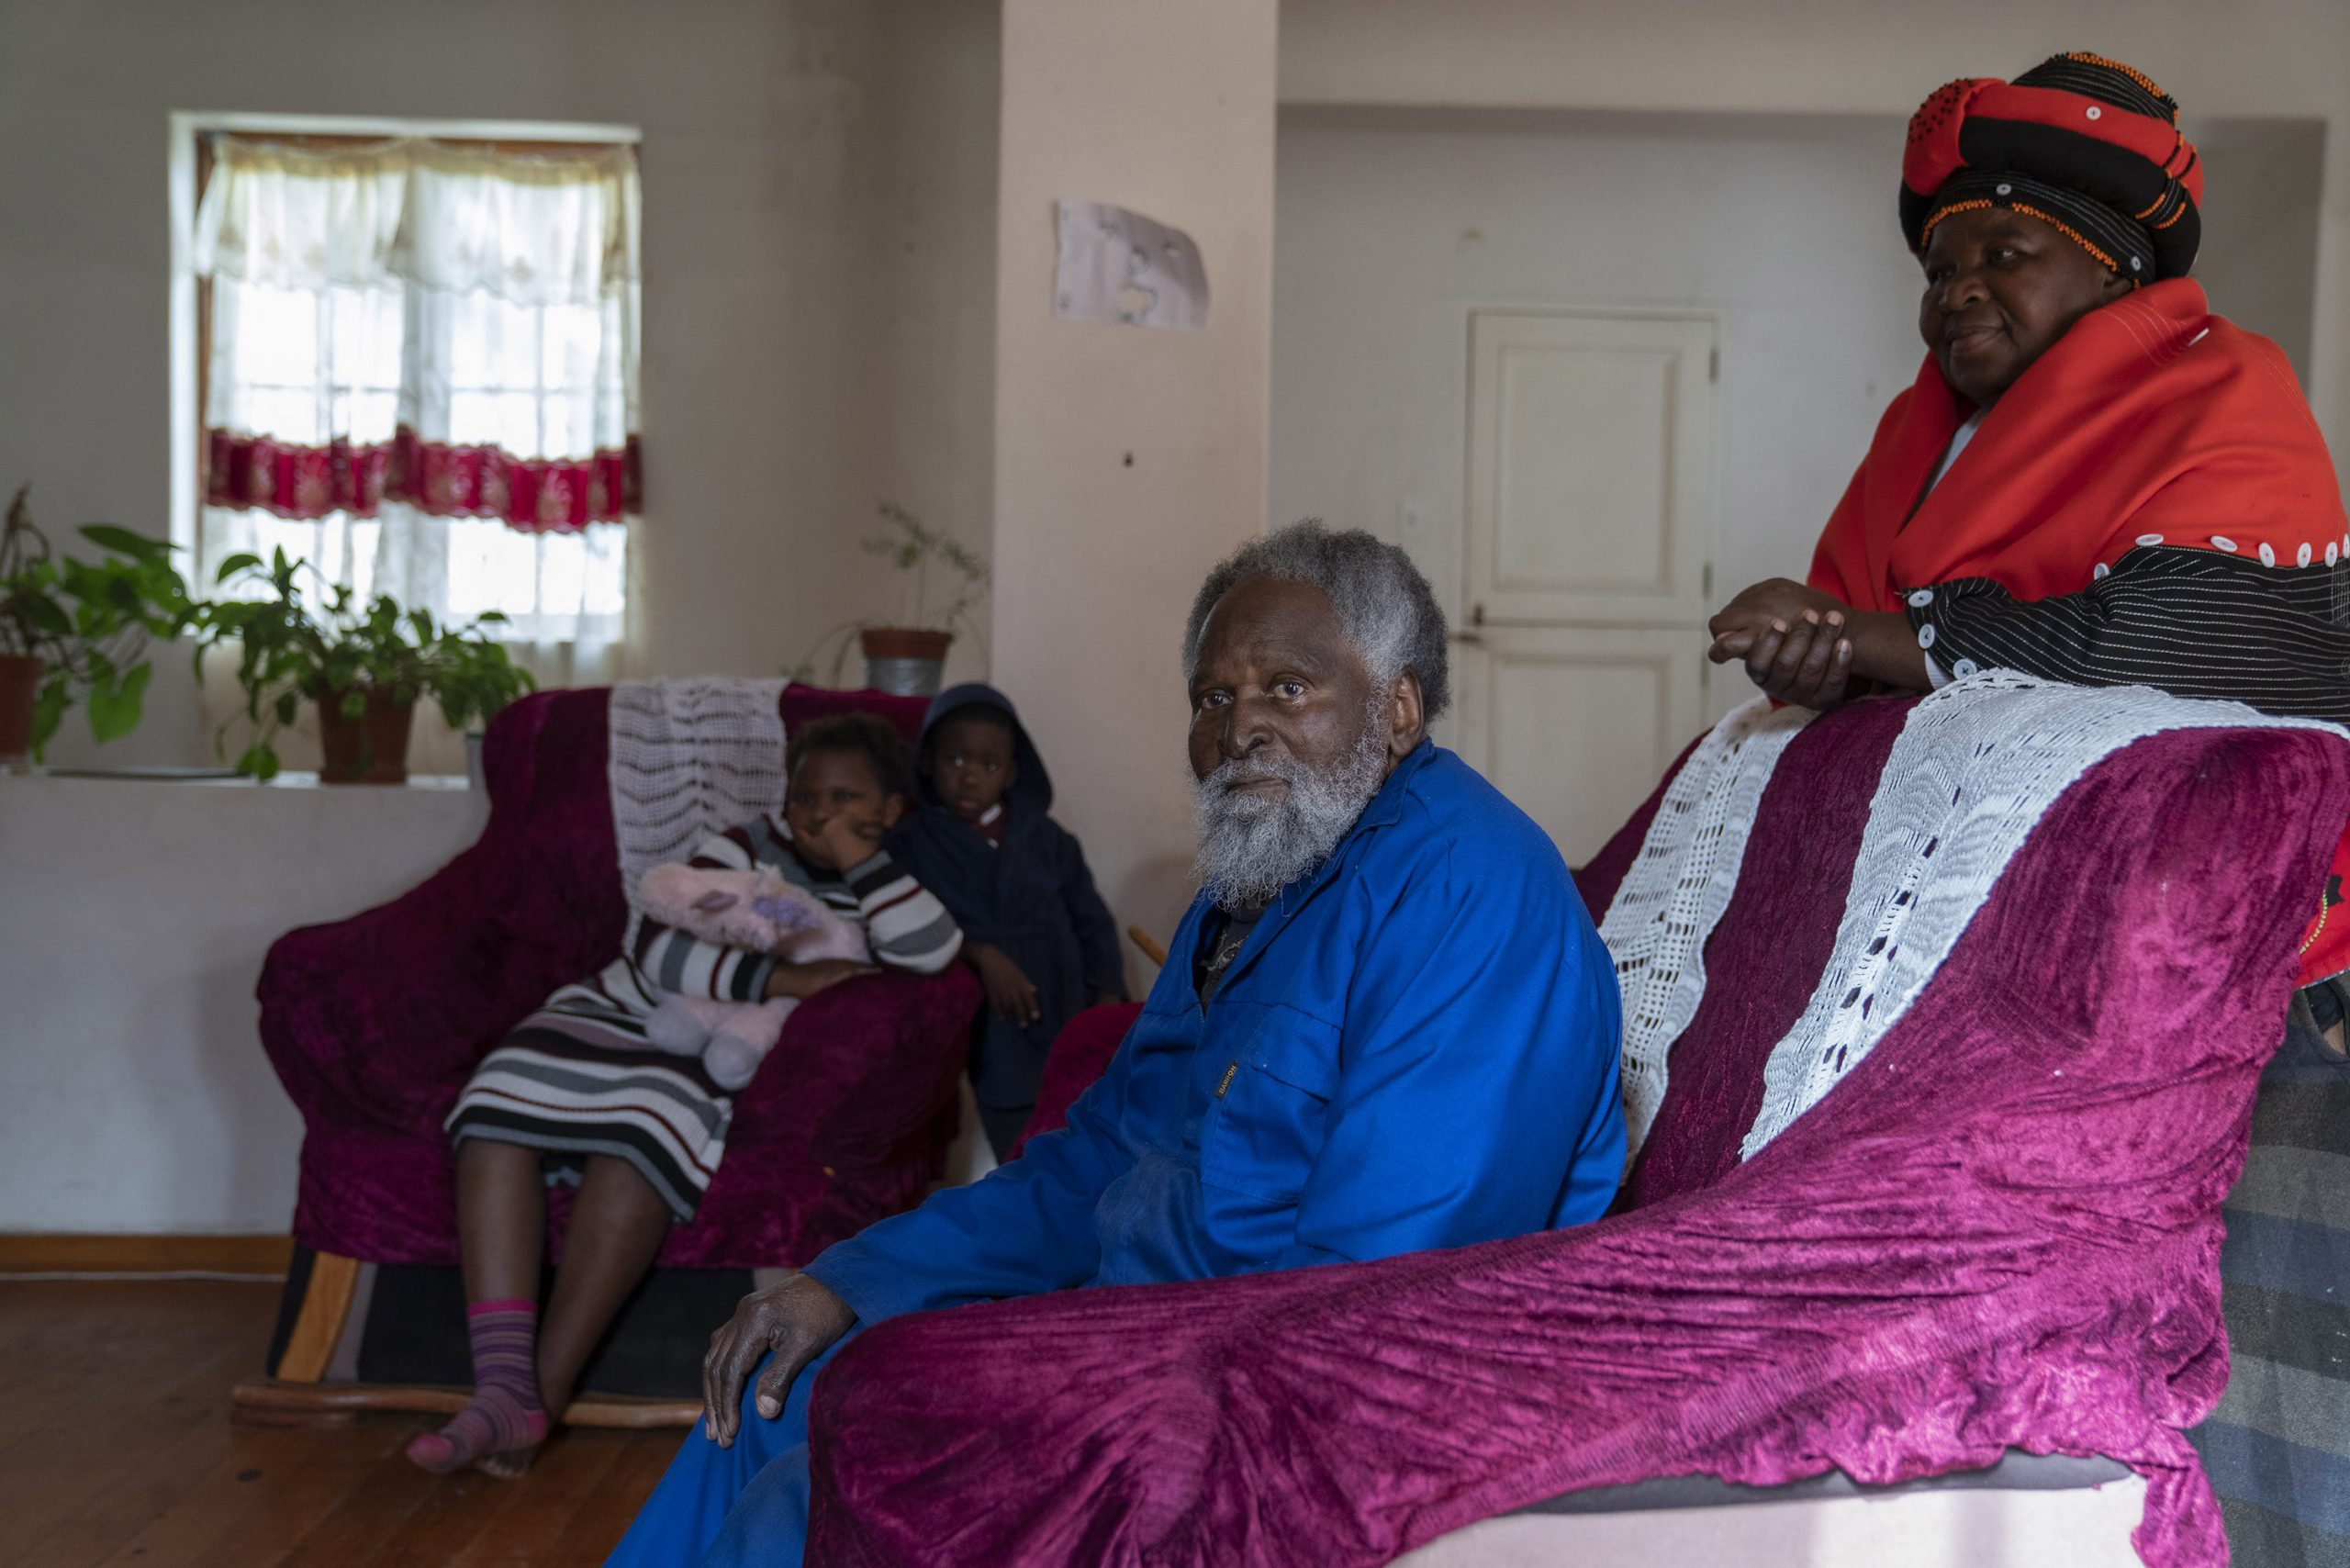 1 July 2019: Lungiswa Madinda stands behind her father Mongezi Madinda in their home on Castle Farm. The family moved to Peddie in the former Ciskei, but returned to the area after a land restitution case was settled in 2006.